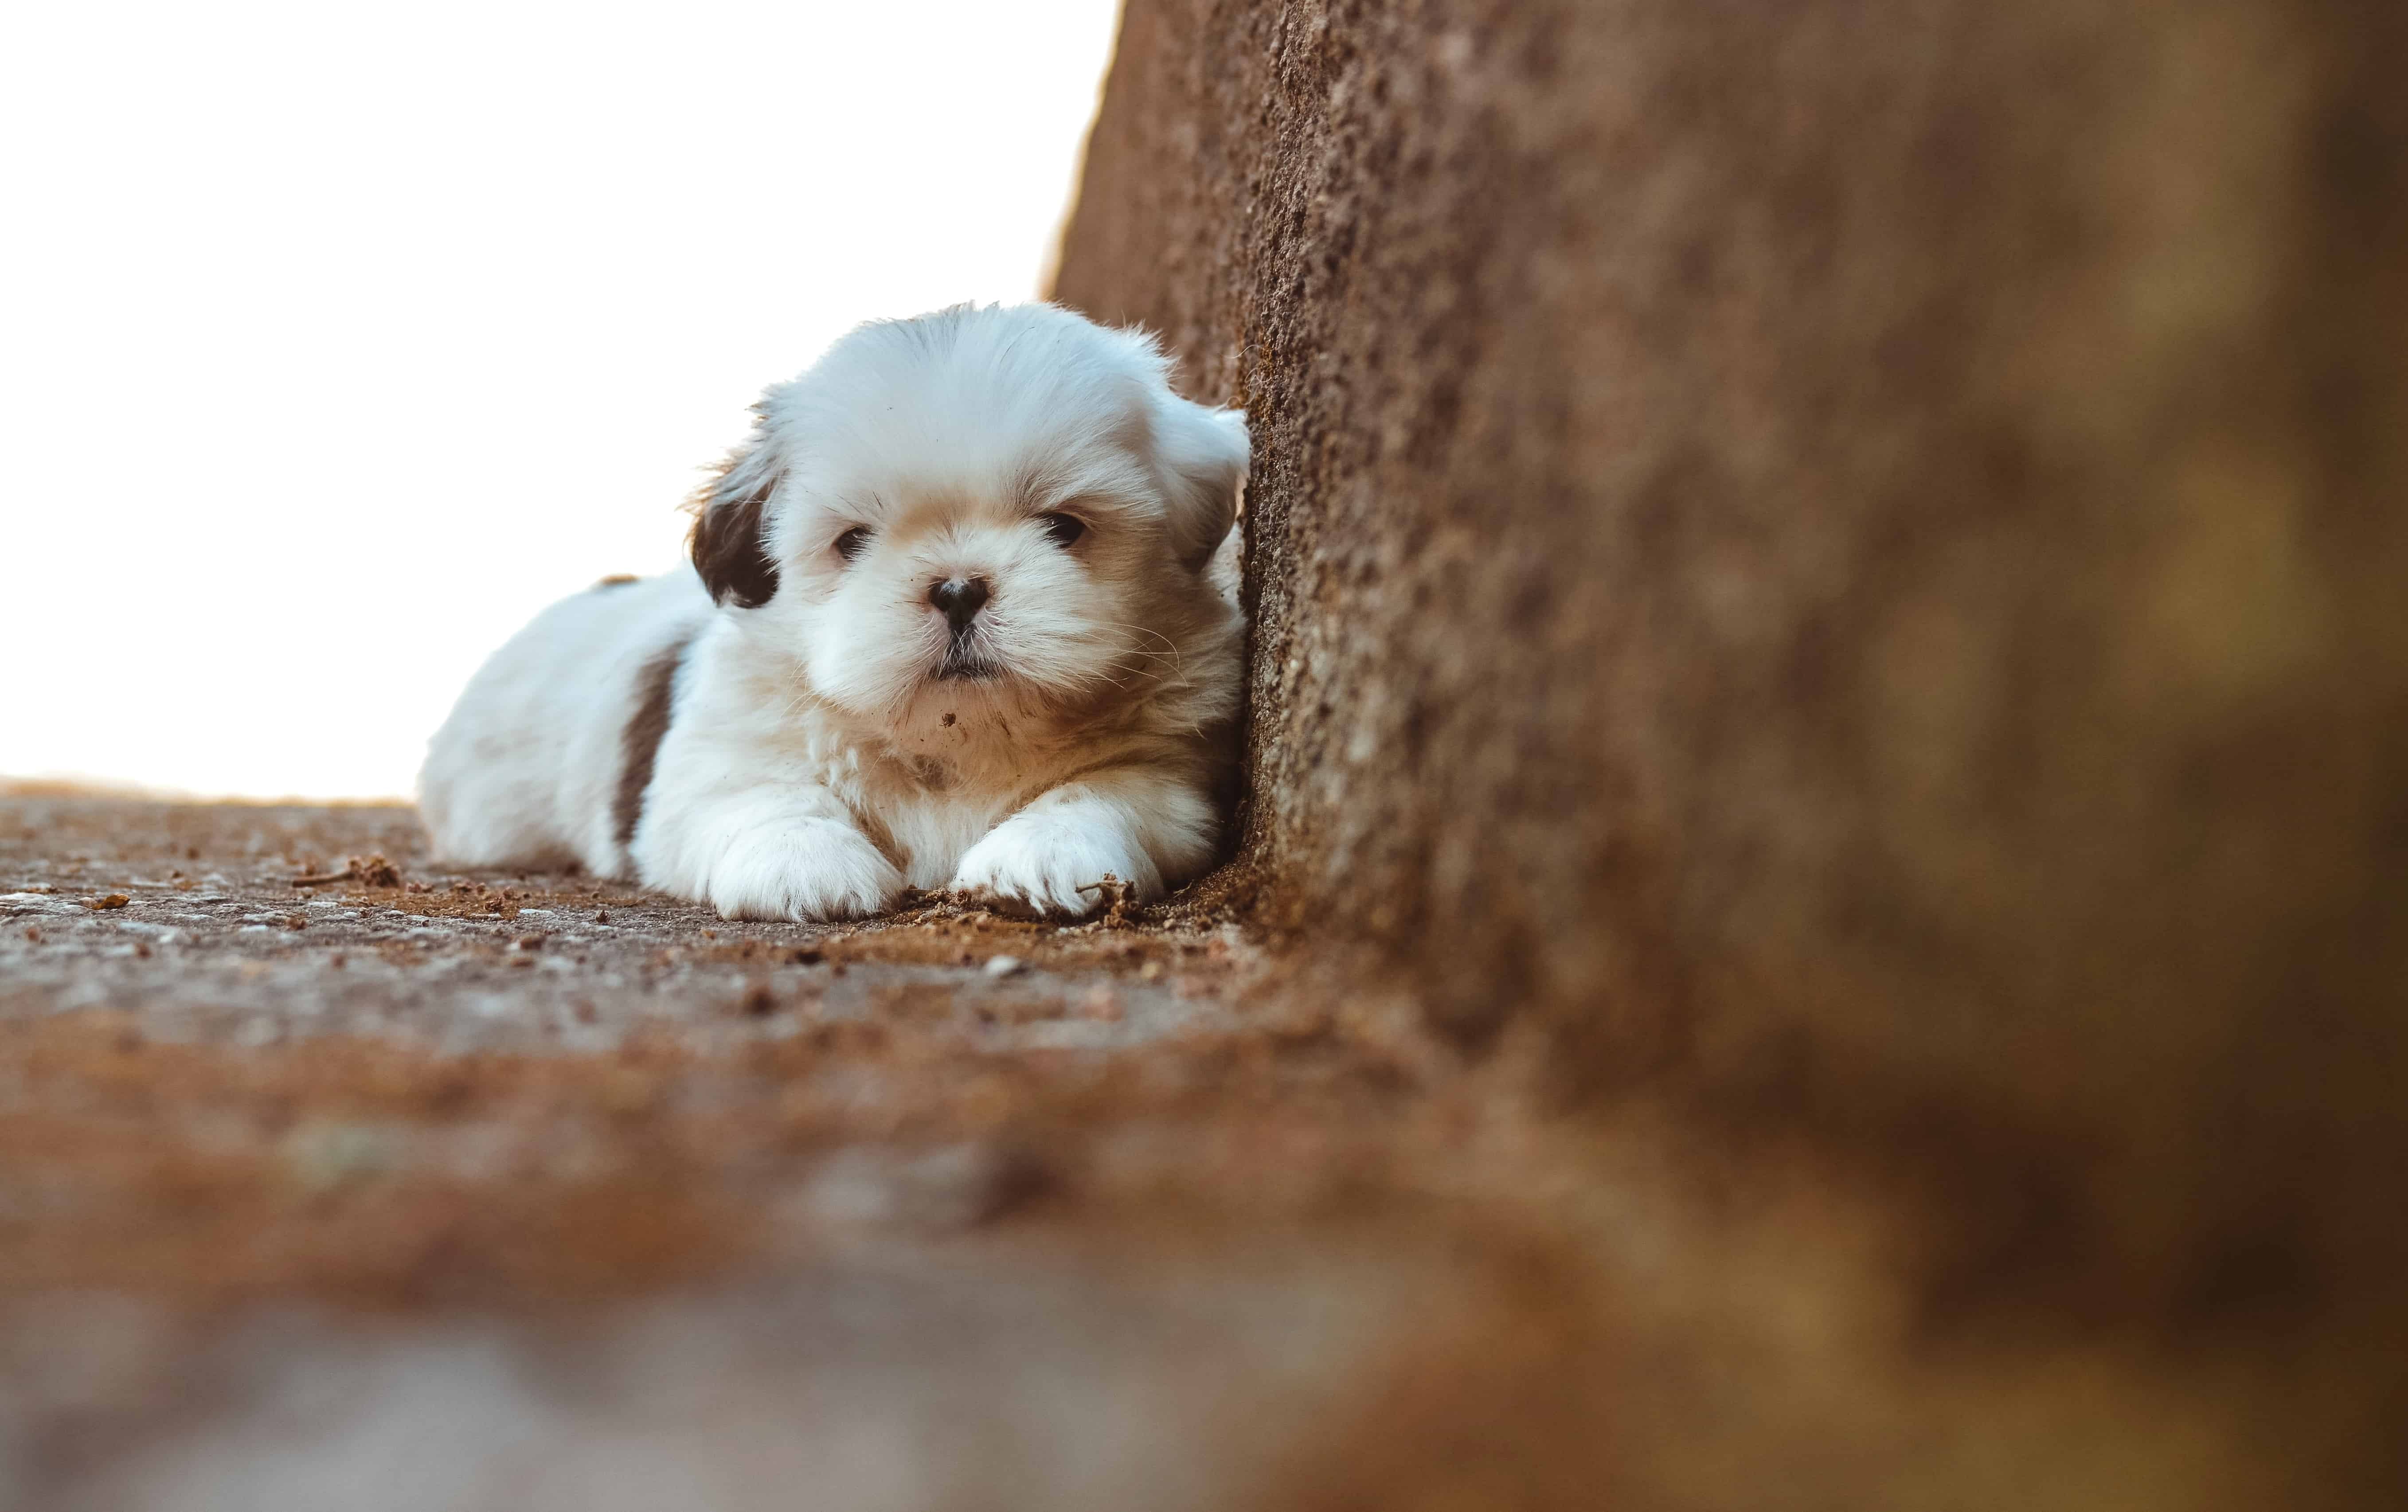 Download Wallpaper Cute Cat Free Picture Cute Dog Canine Pet Puppy Adorable Fur